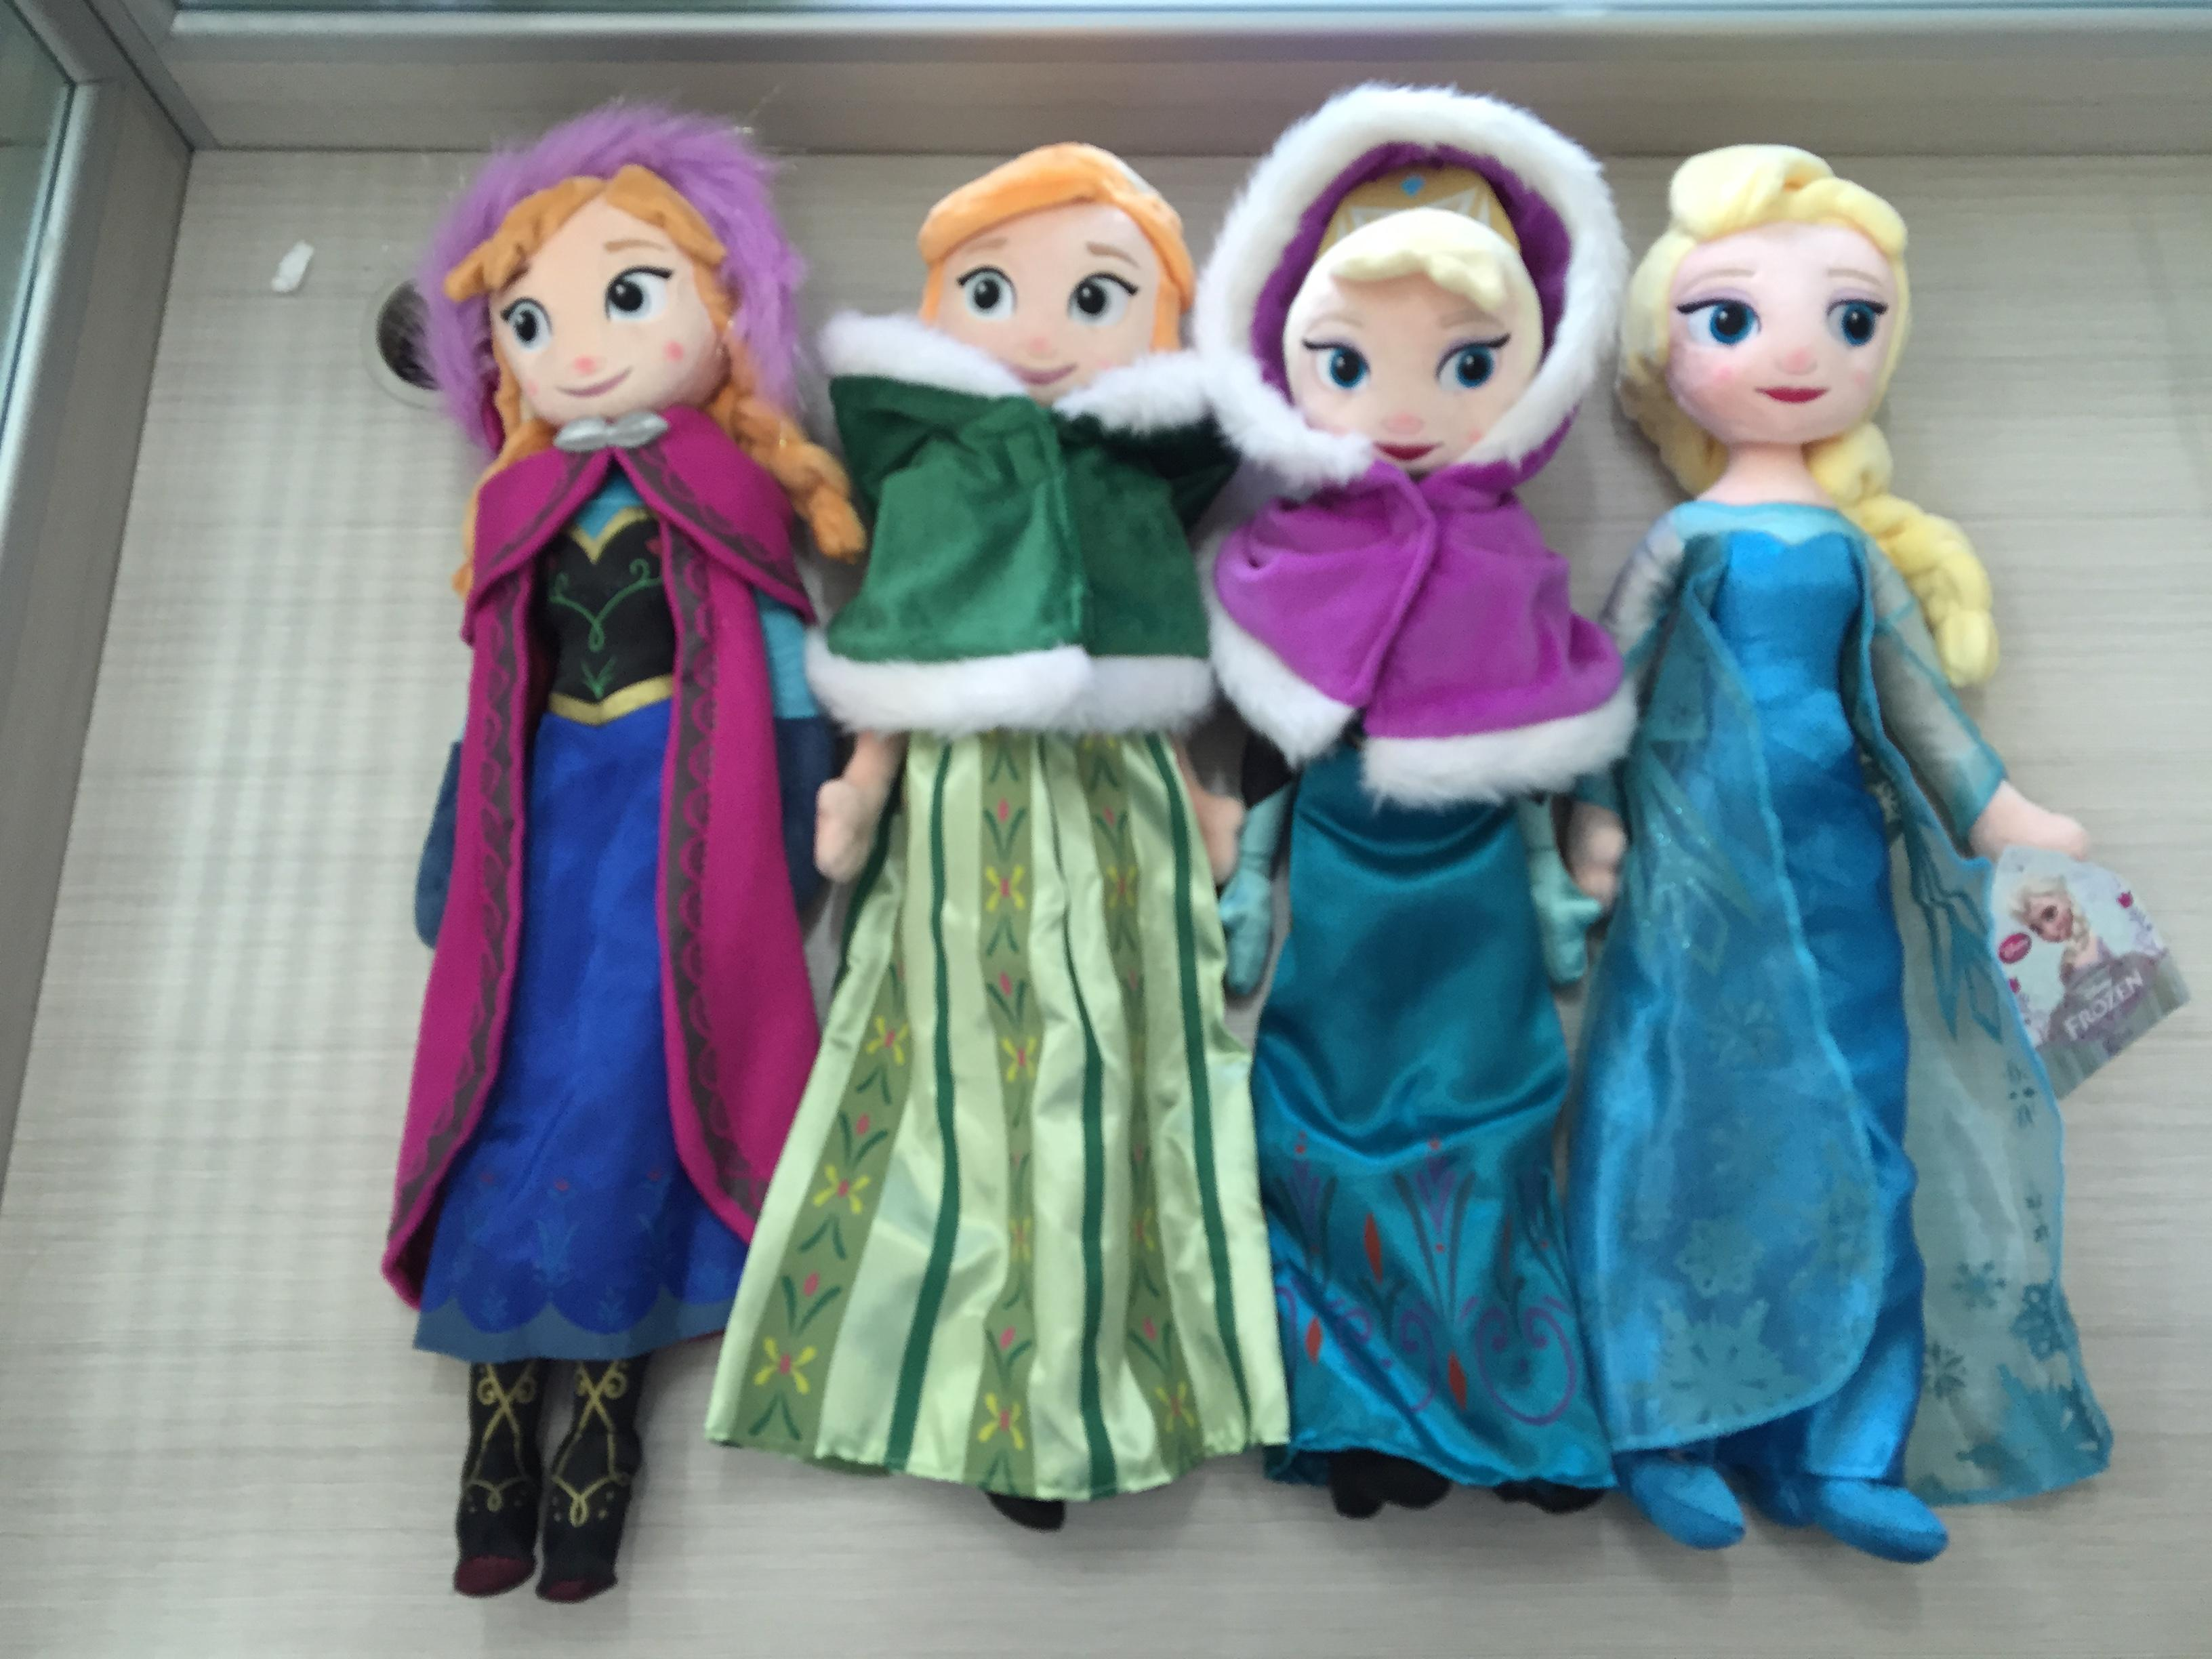 Winter Toys 10 And Up : Frozen movie cm princess queen elsa plush dolls two